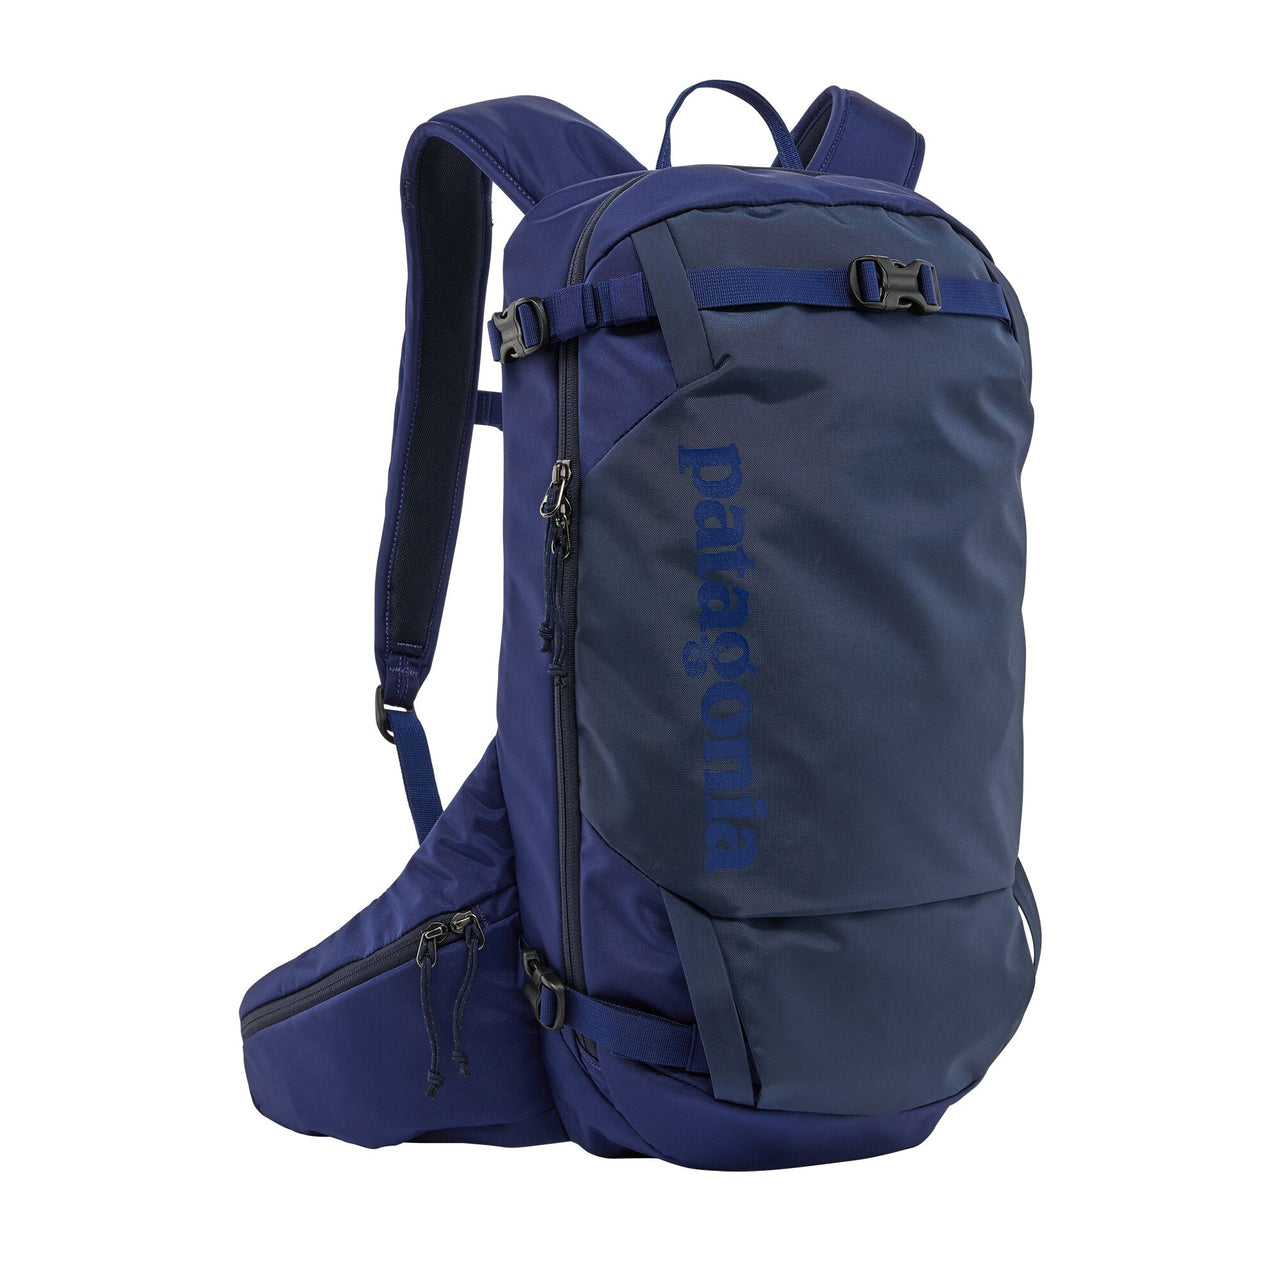 Patagonia Snowdrifter 20L pack